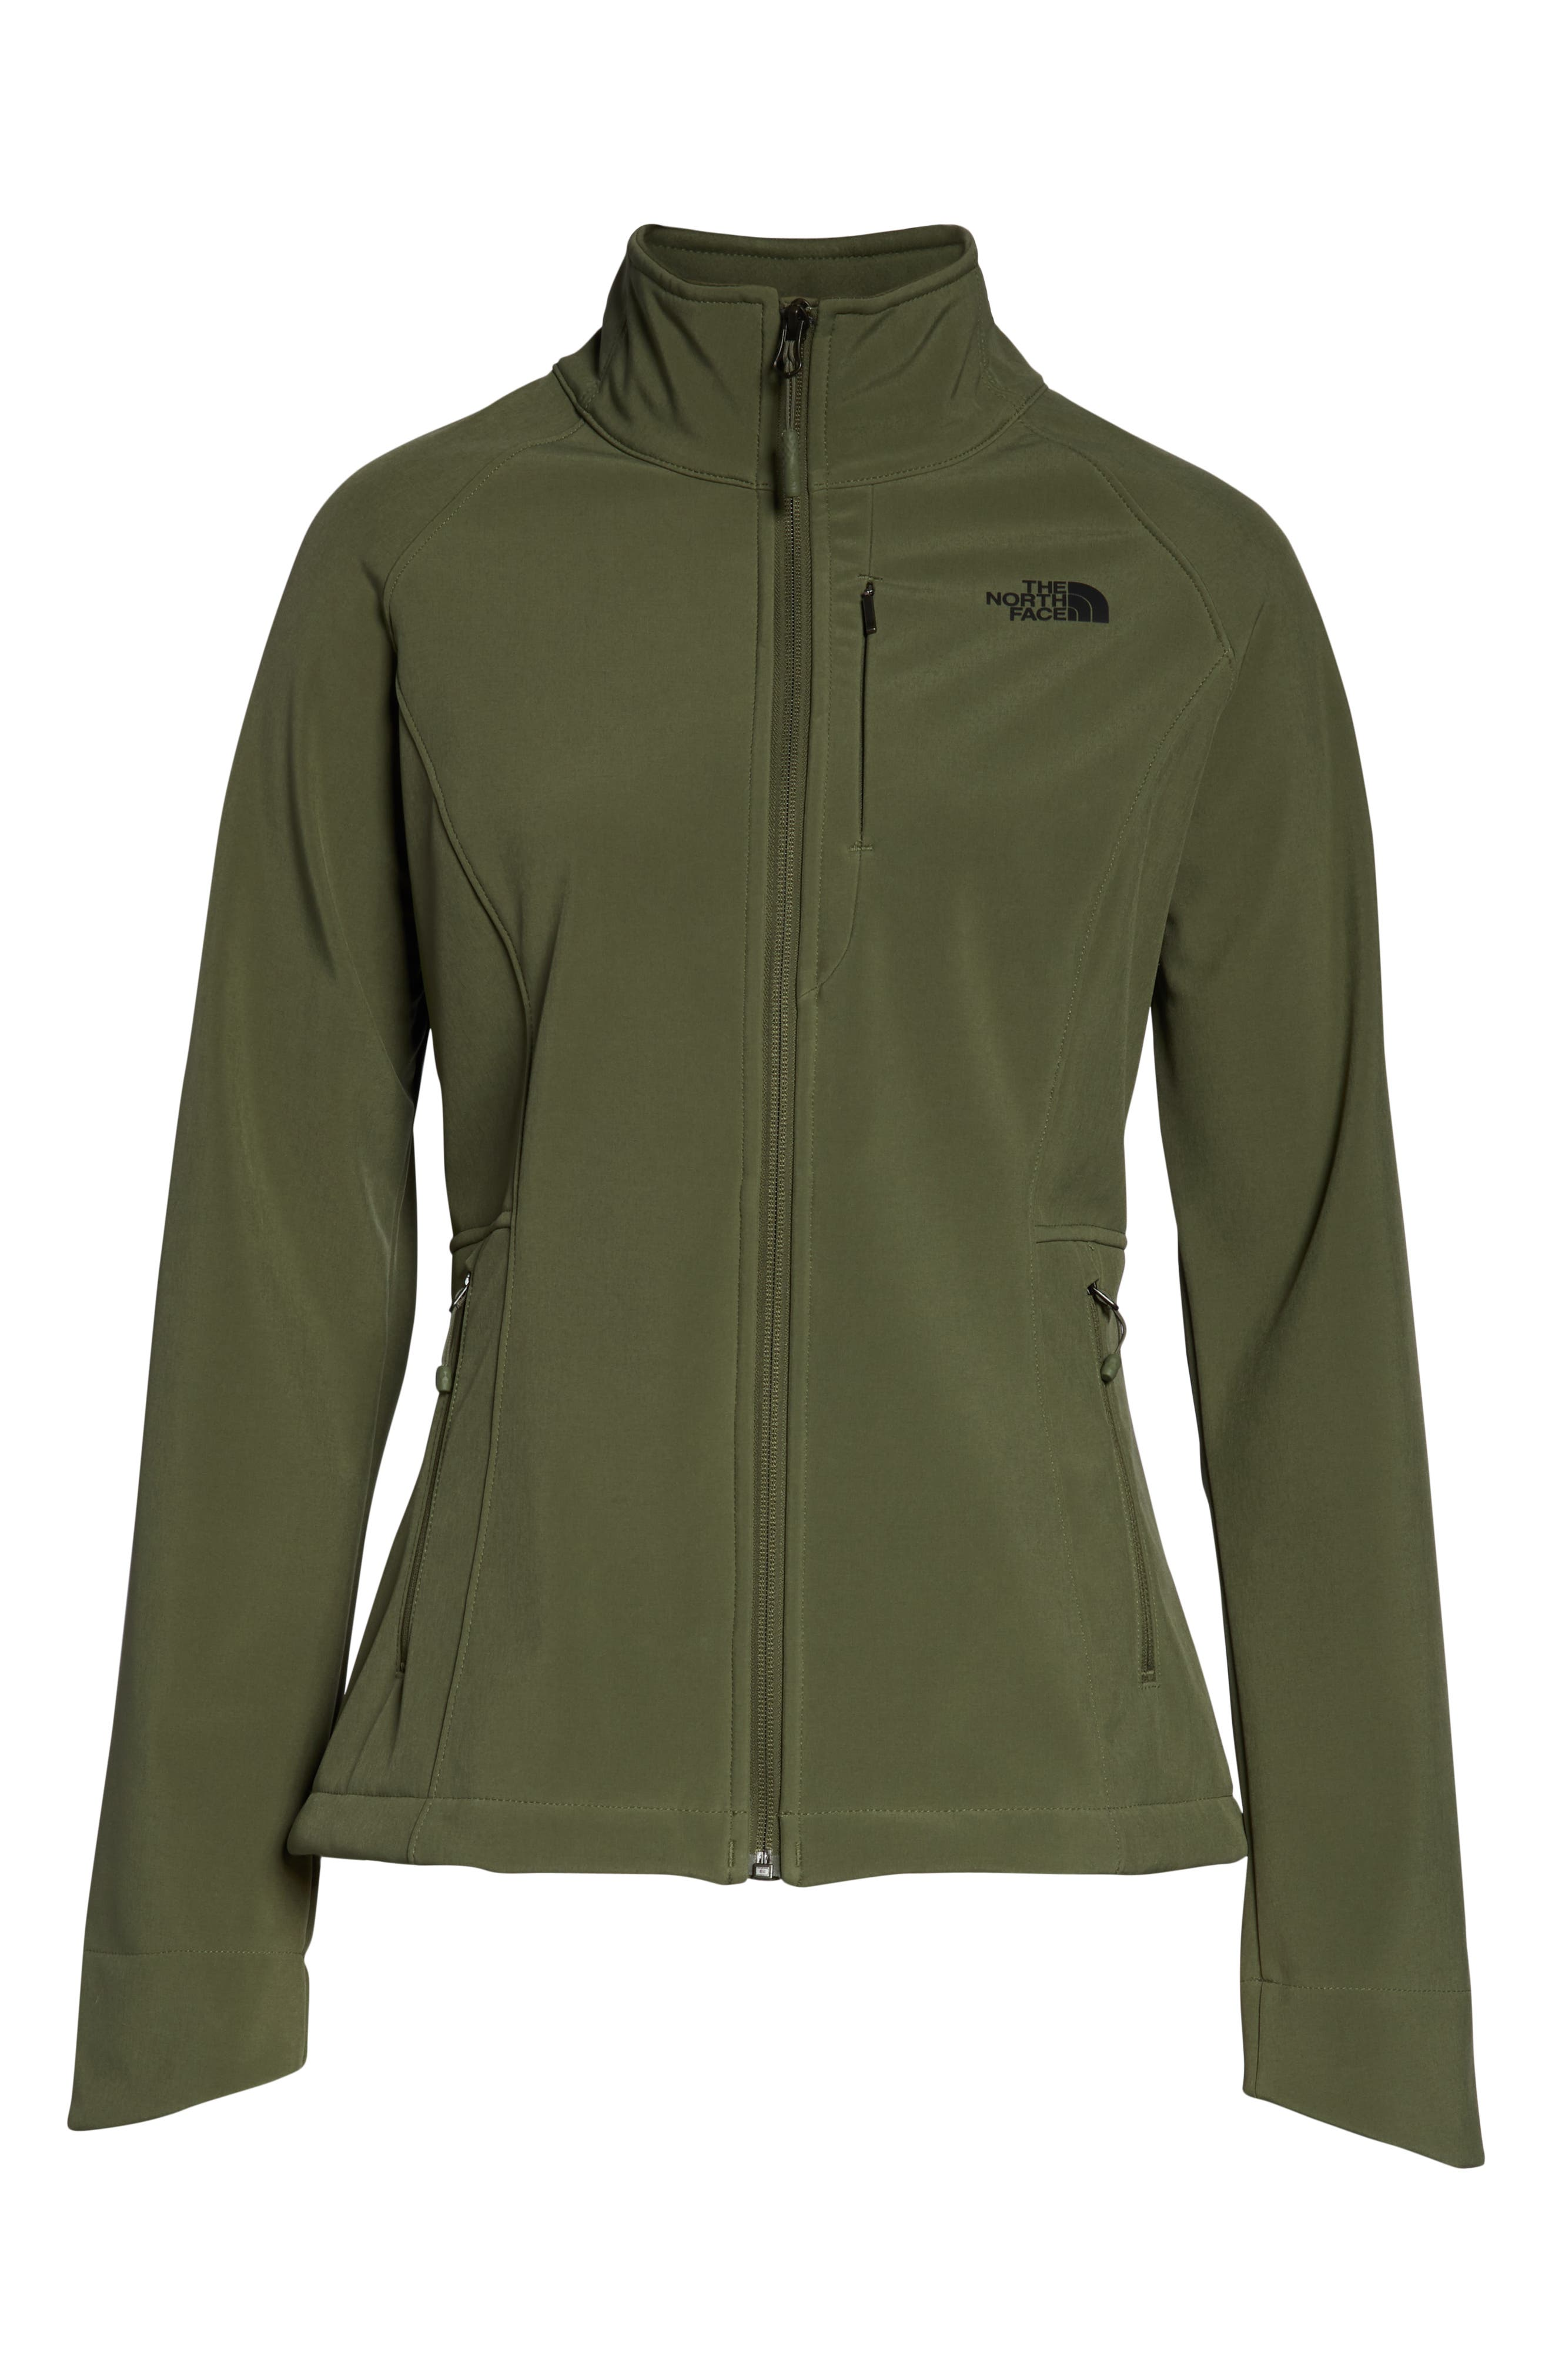 THE NORTH FACE, 'Apex Bionic 2' Jacket, Alternate thumbnail 5, color, 301